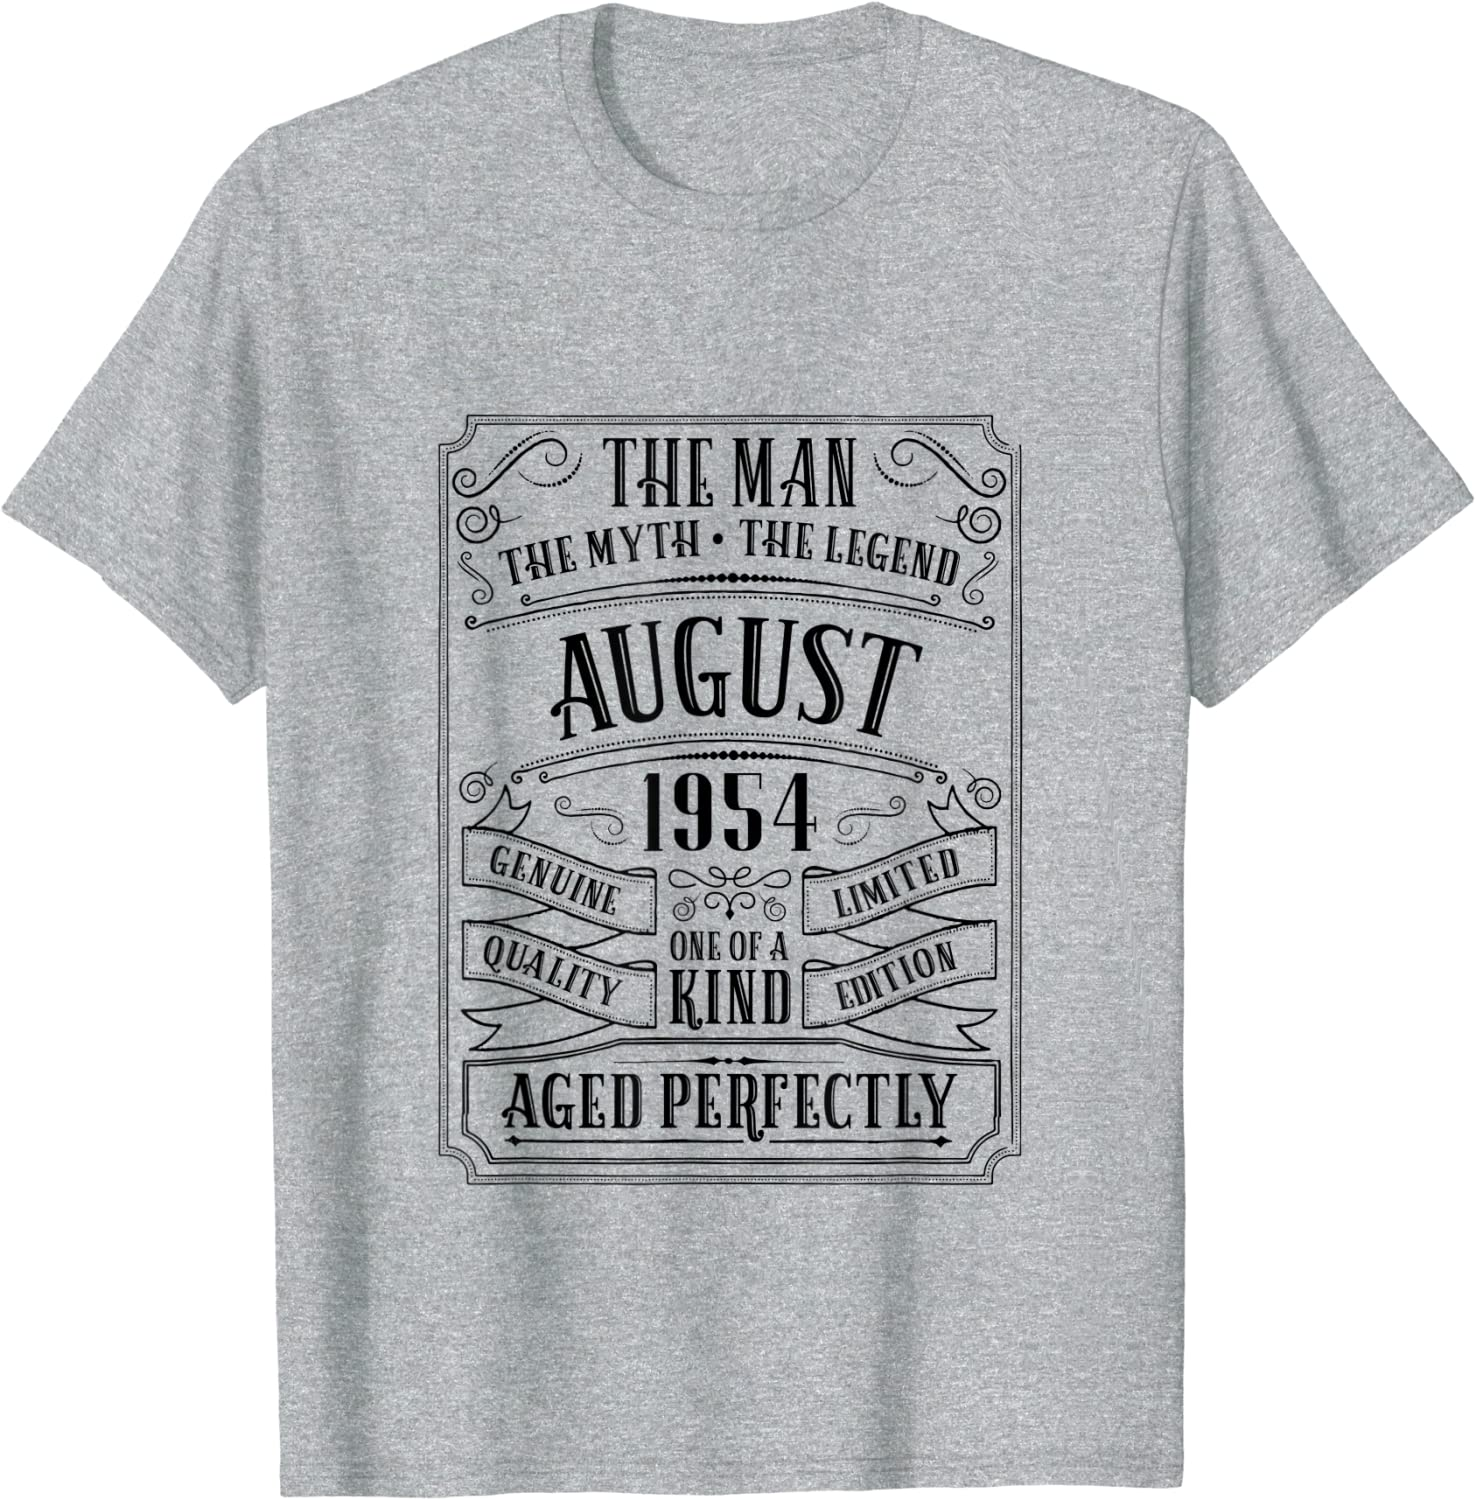 67th Birthday Gift Ideas for A 67 Year Old Mens T Shirt Birthday Present Ideas